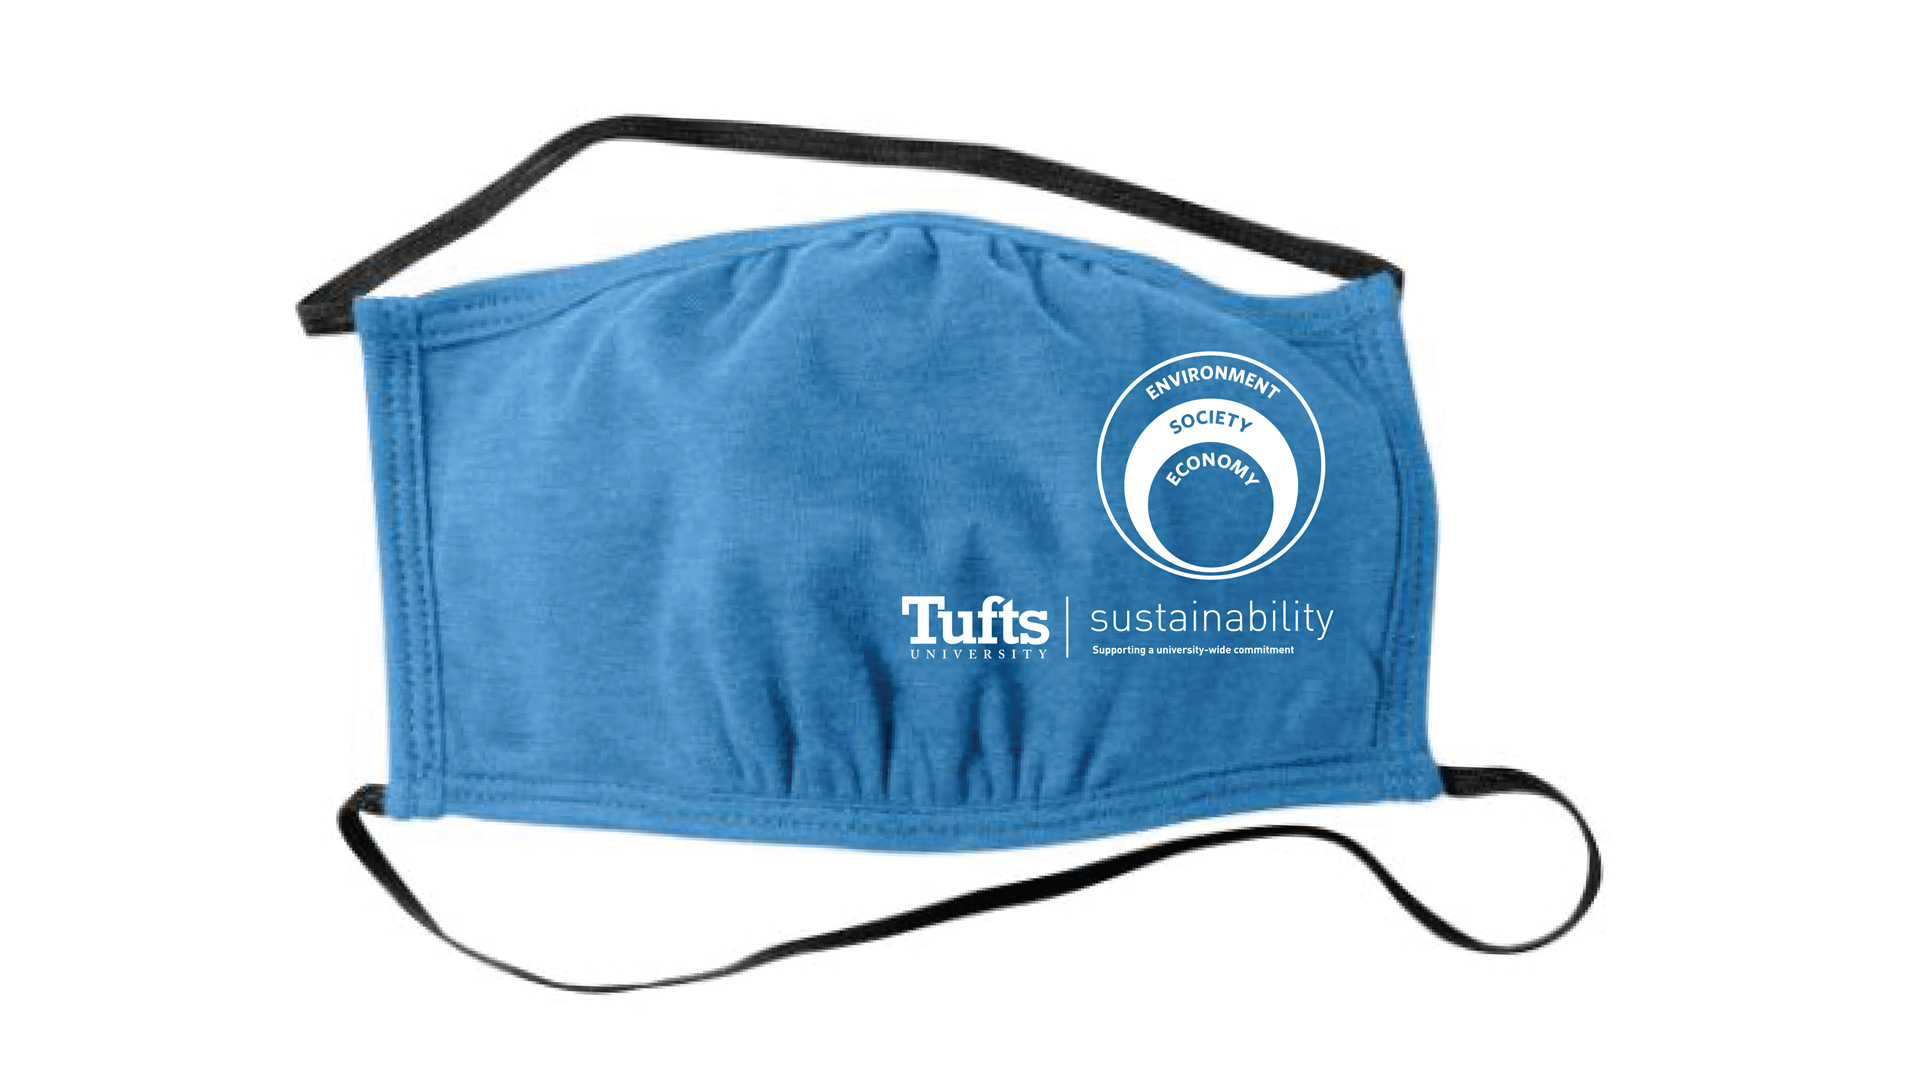 Image of a blue reusable face mask with the Tufts Sustainability logo printed on the right side